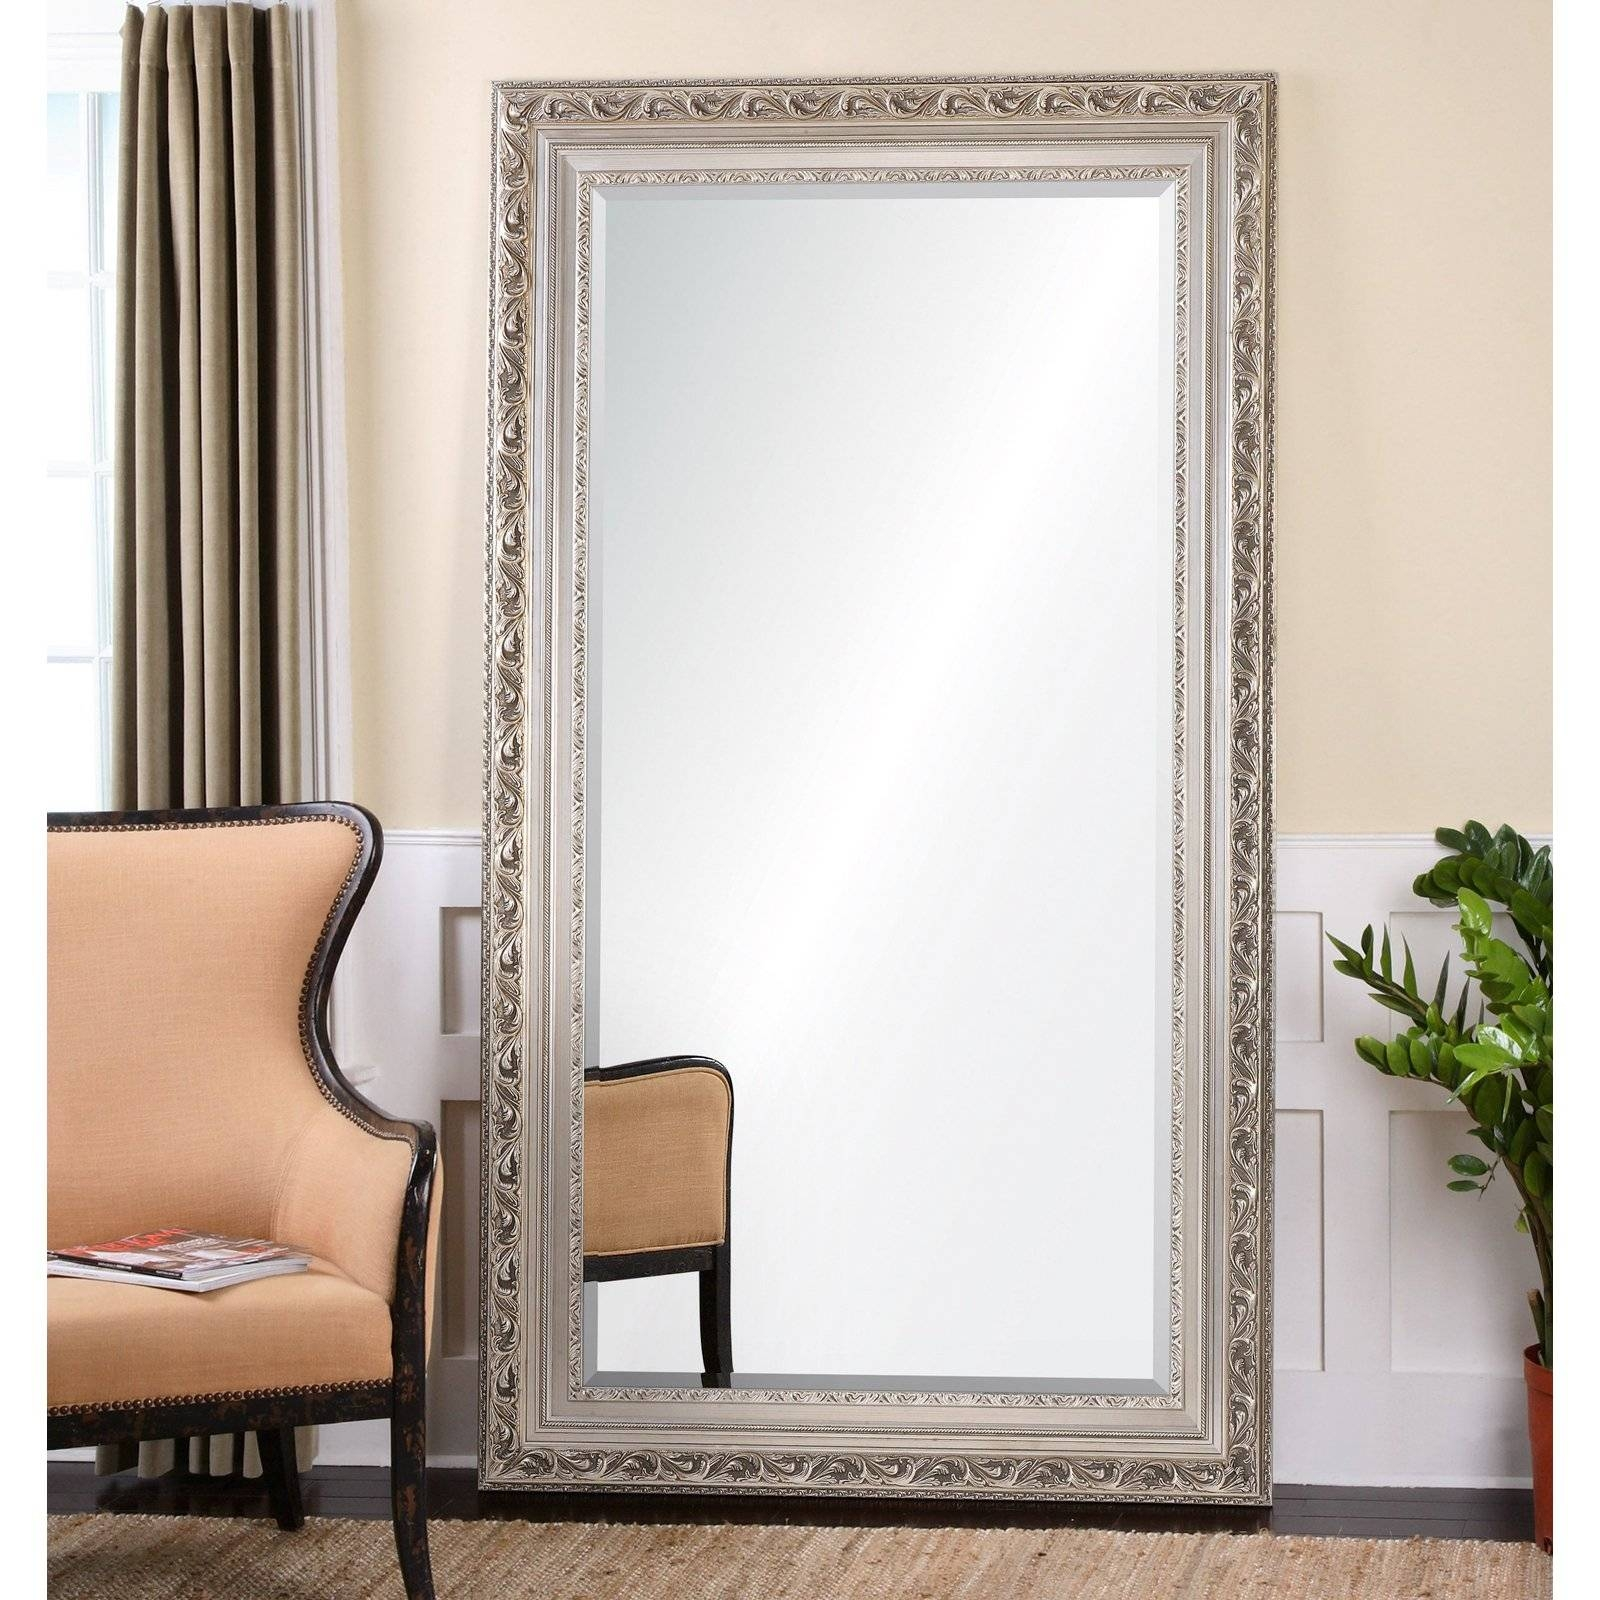 Cheap Full Length Mirrors – Harpsounds.co with Huge Full Length Mirrors (Image 10 of 25)